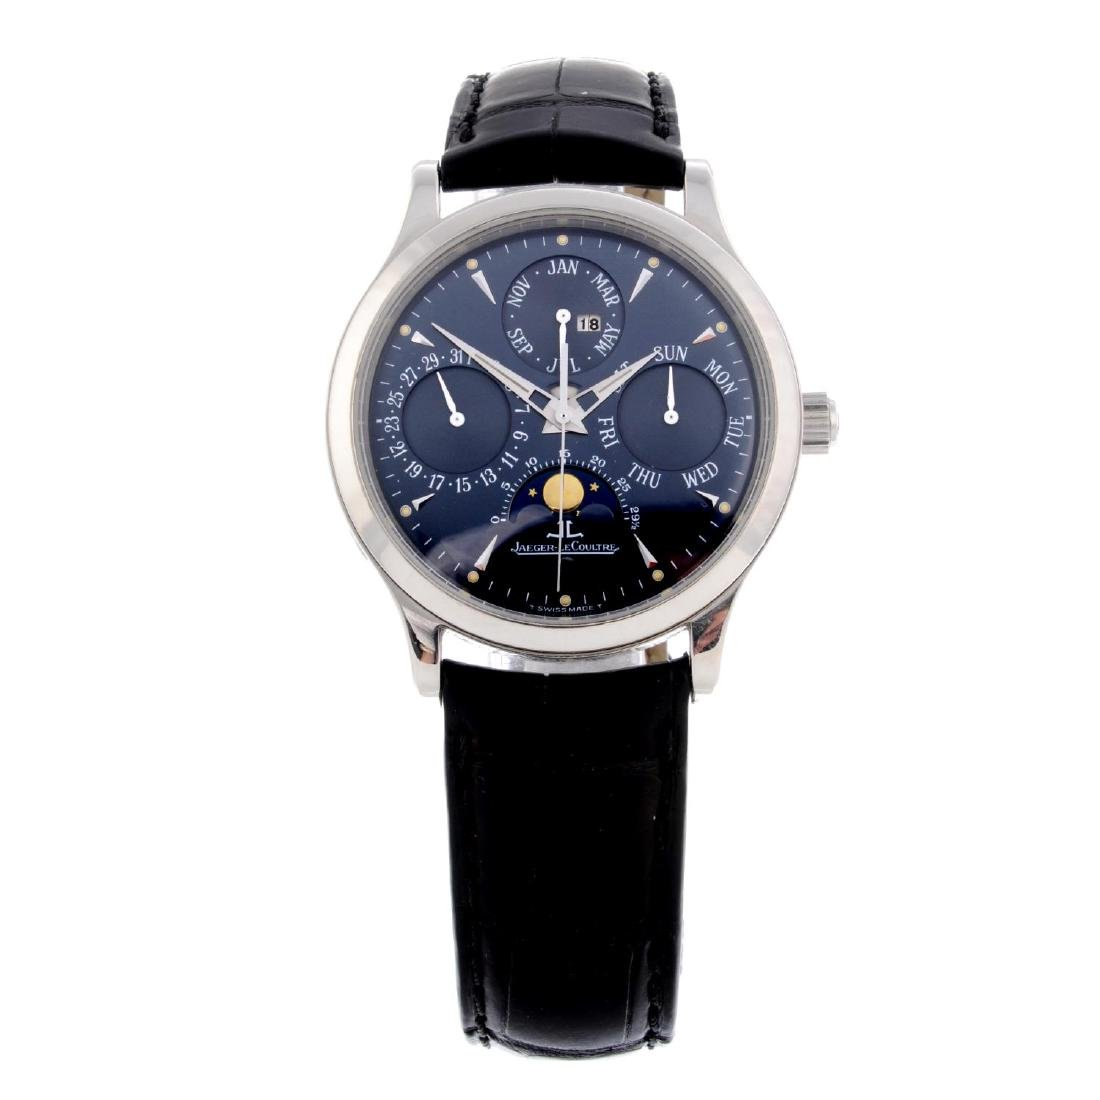 JAEGER-LECOULTRE - a limited edition gentleman's Master